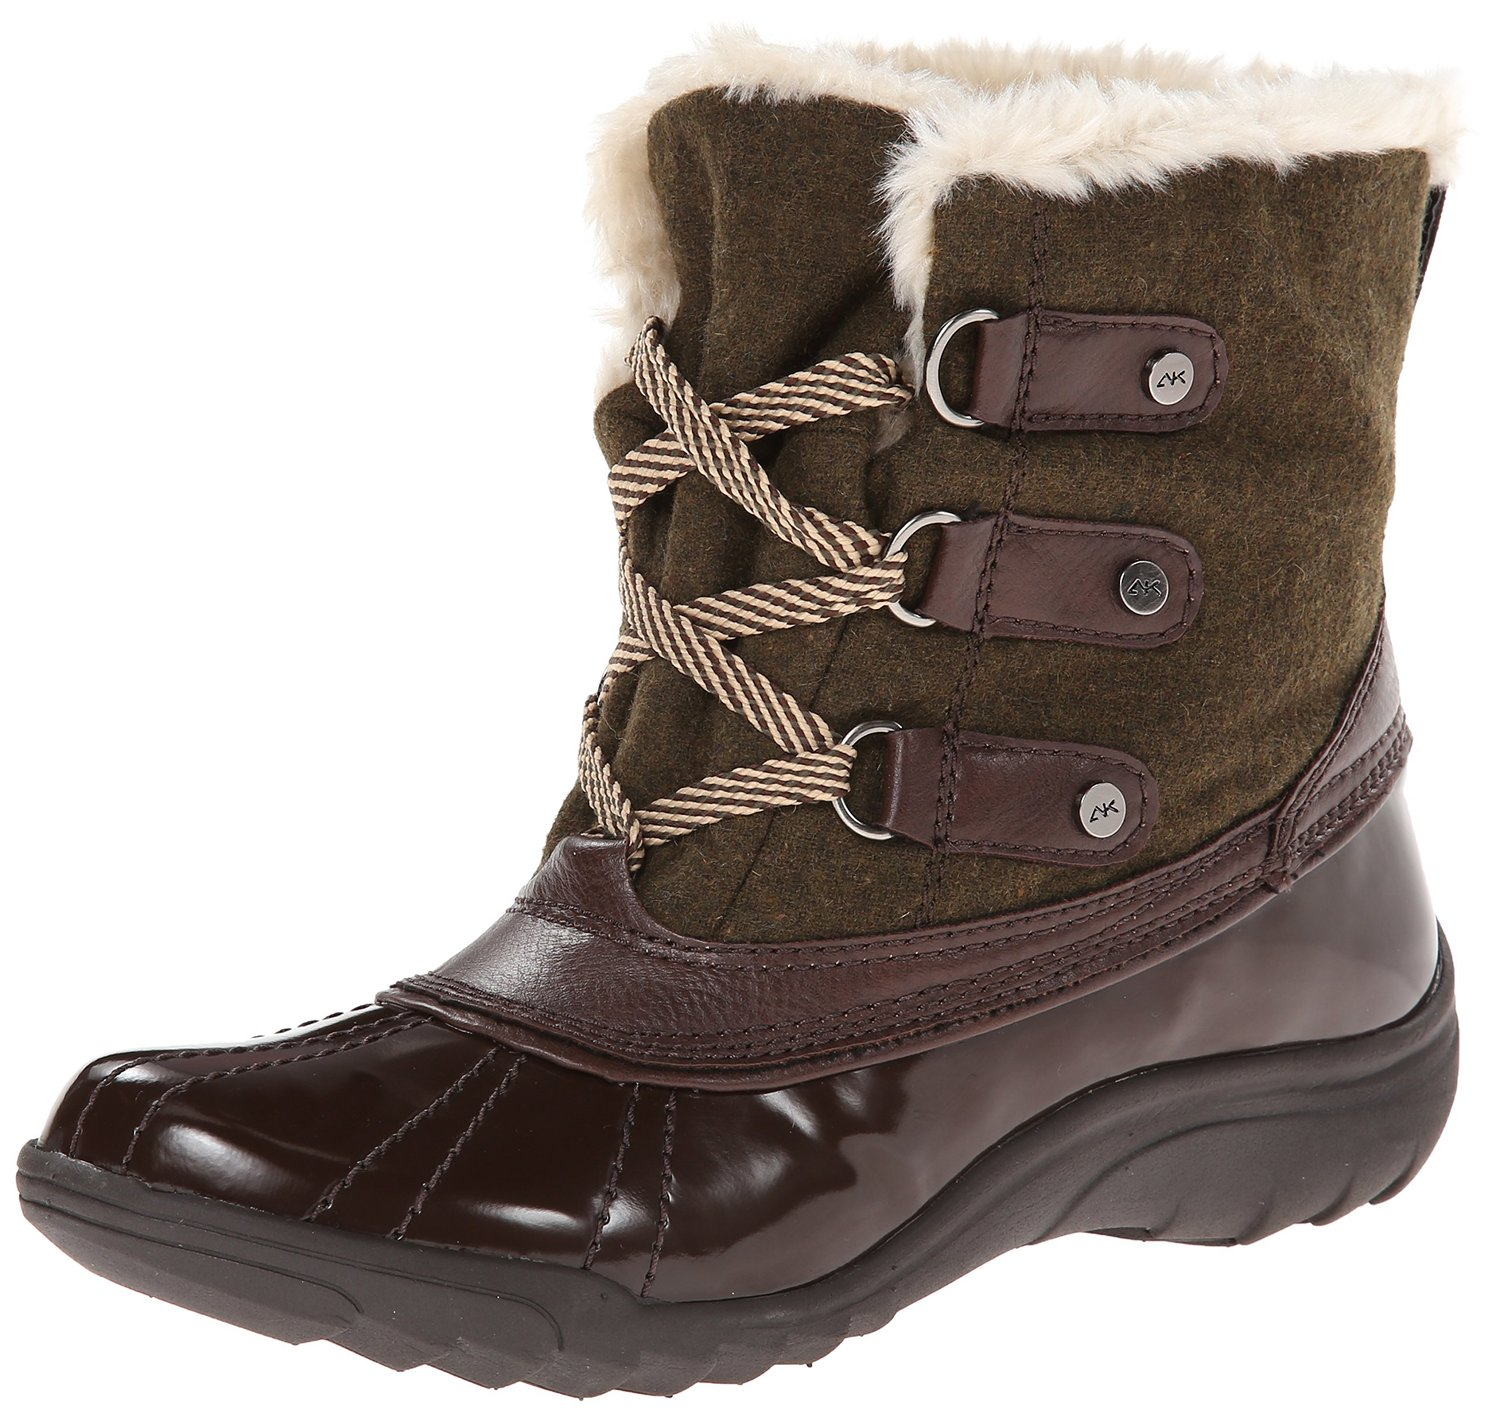 separation shoes factory price outlet store sale Anne Klein Sport Galenka Fabric Ankle High Boot